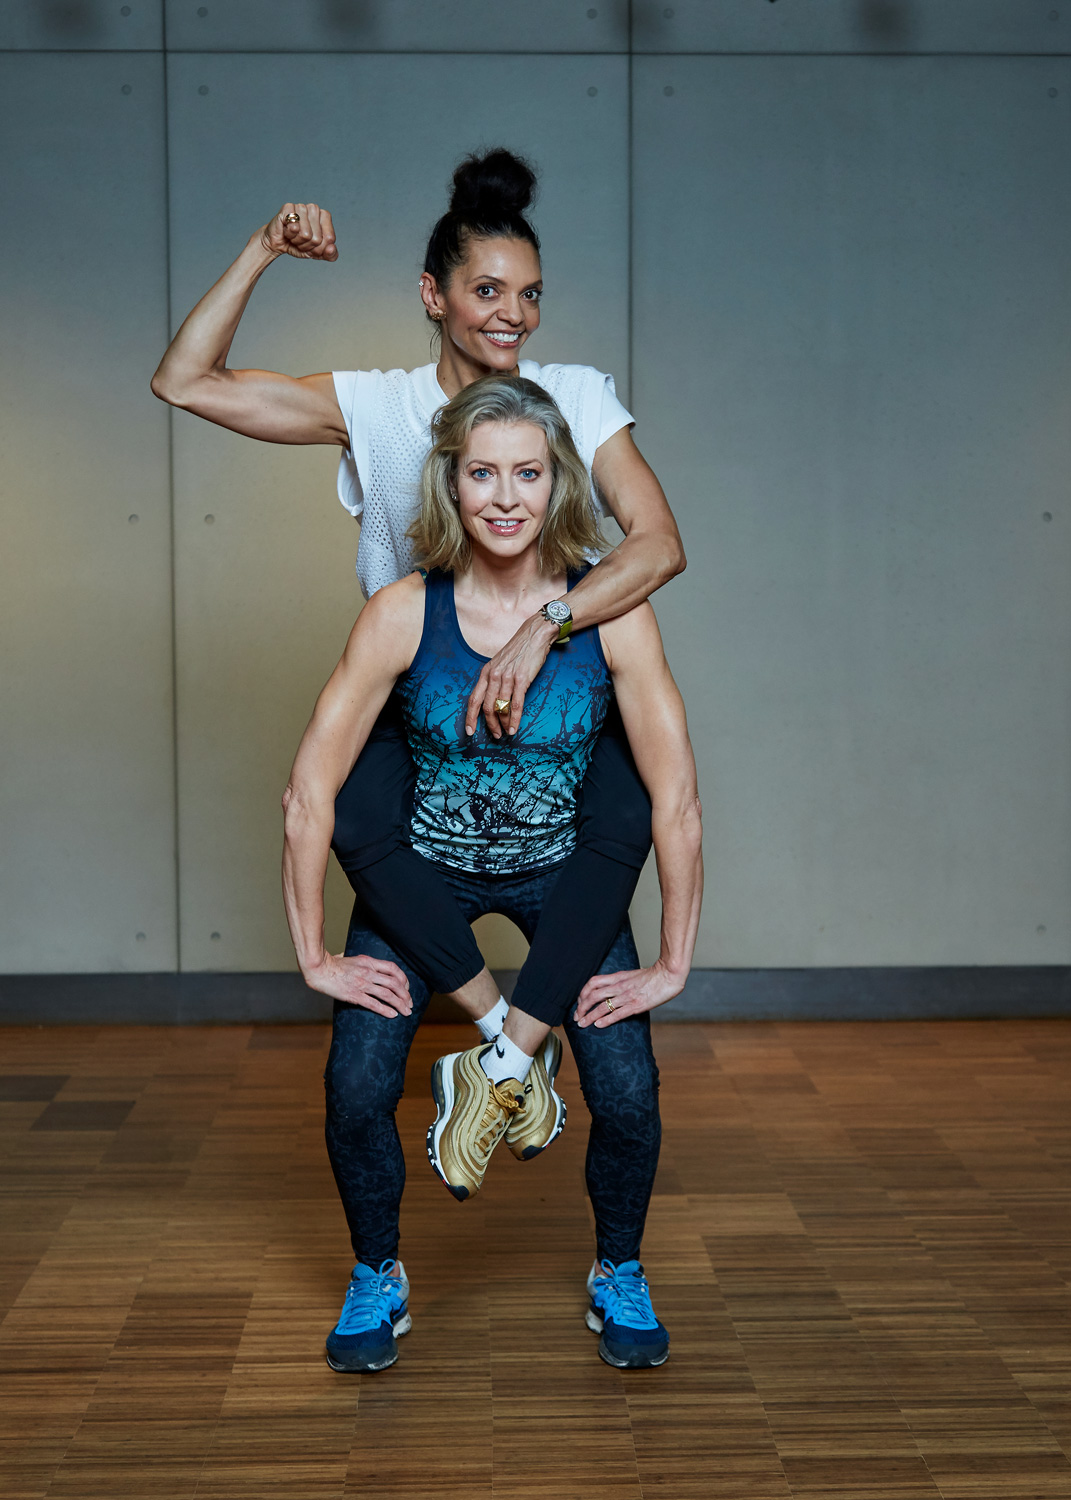 Working out with Efua Baker, photograph by Chris McAndrew at KXU. And yes my smile does look a bit strained!!